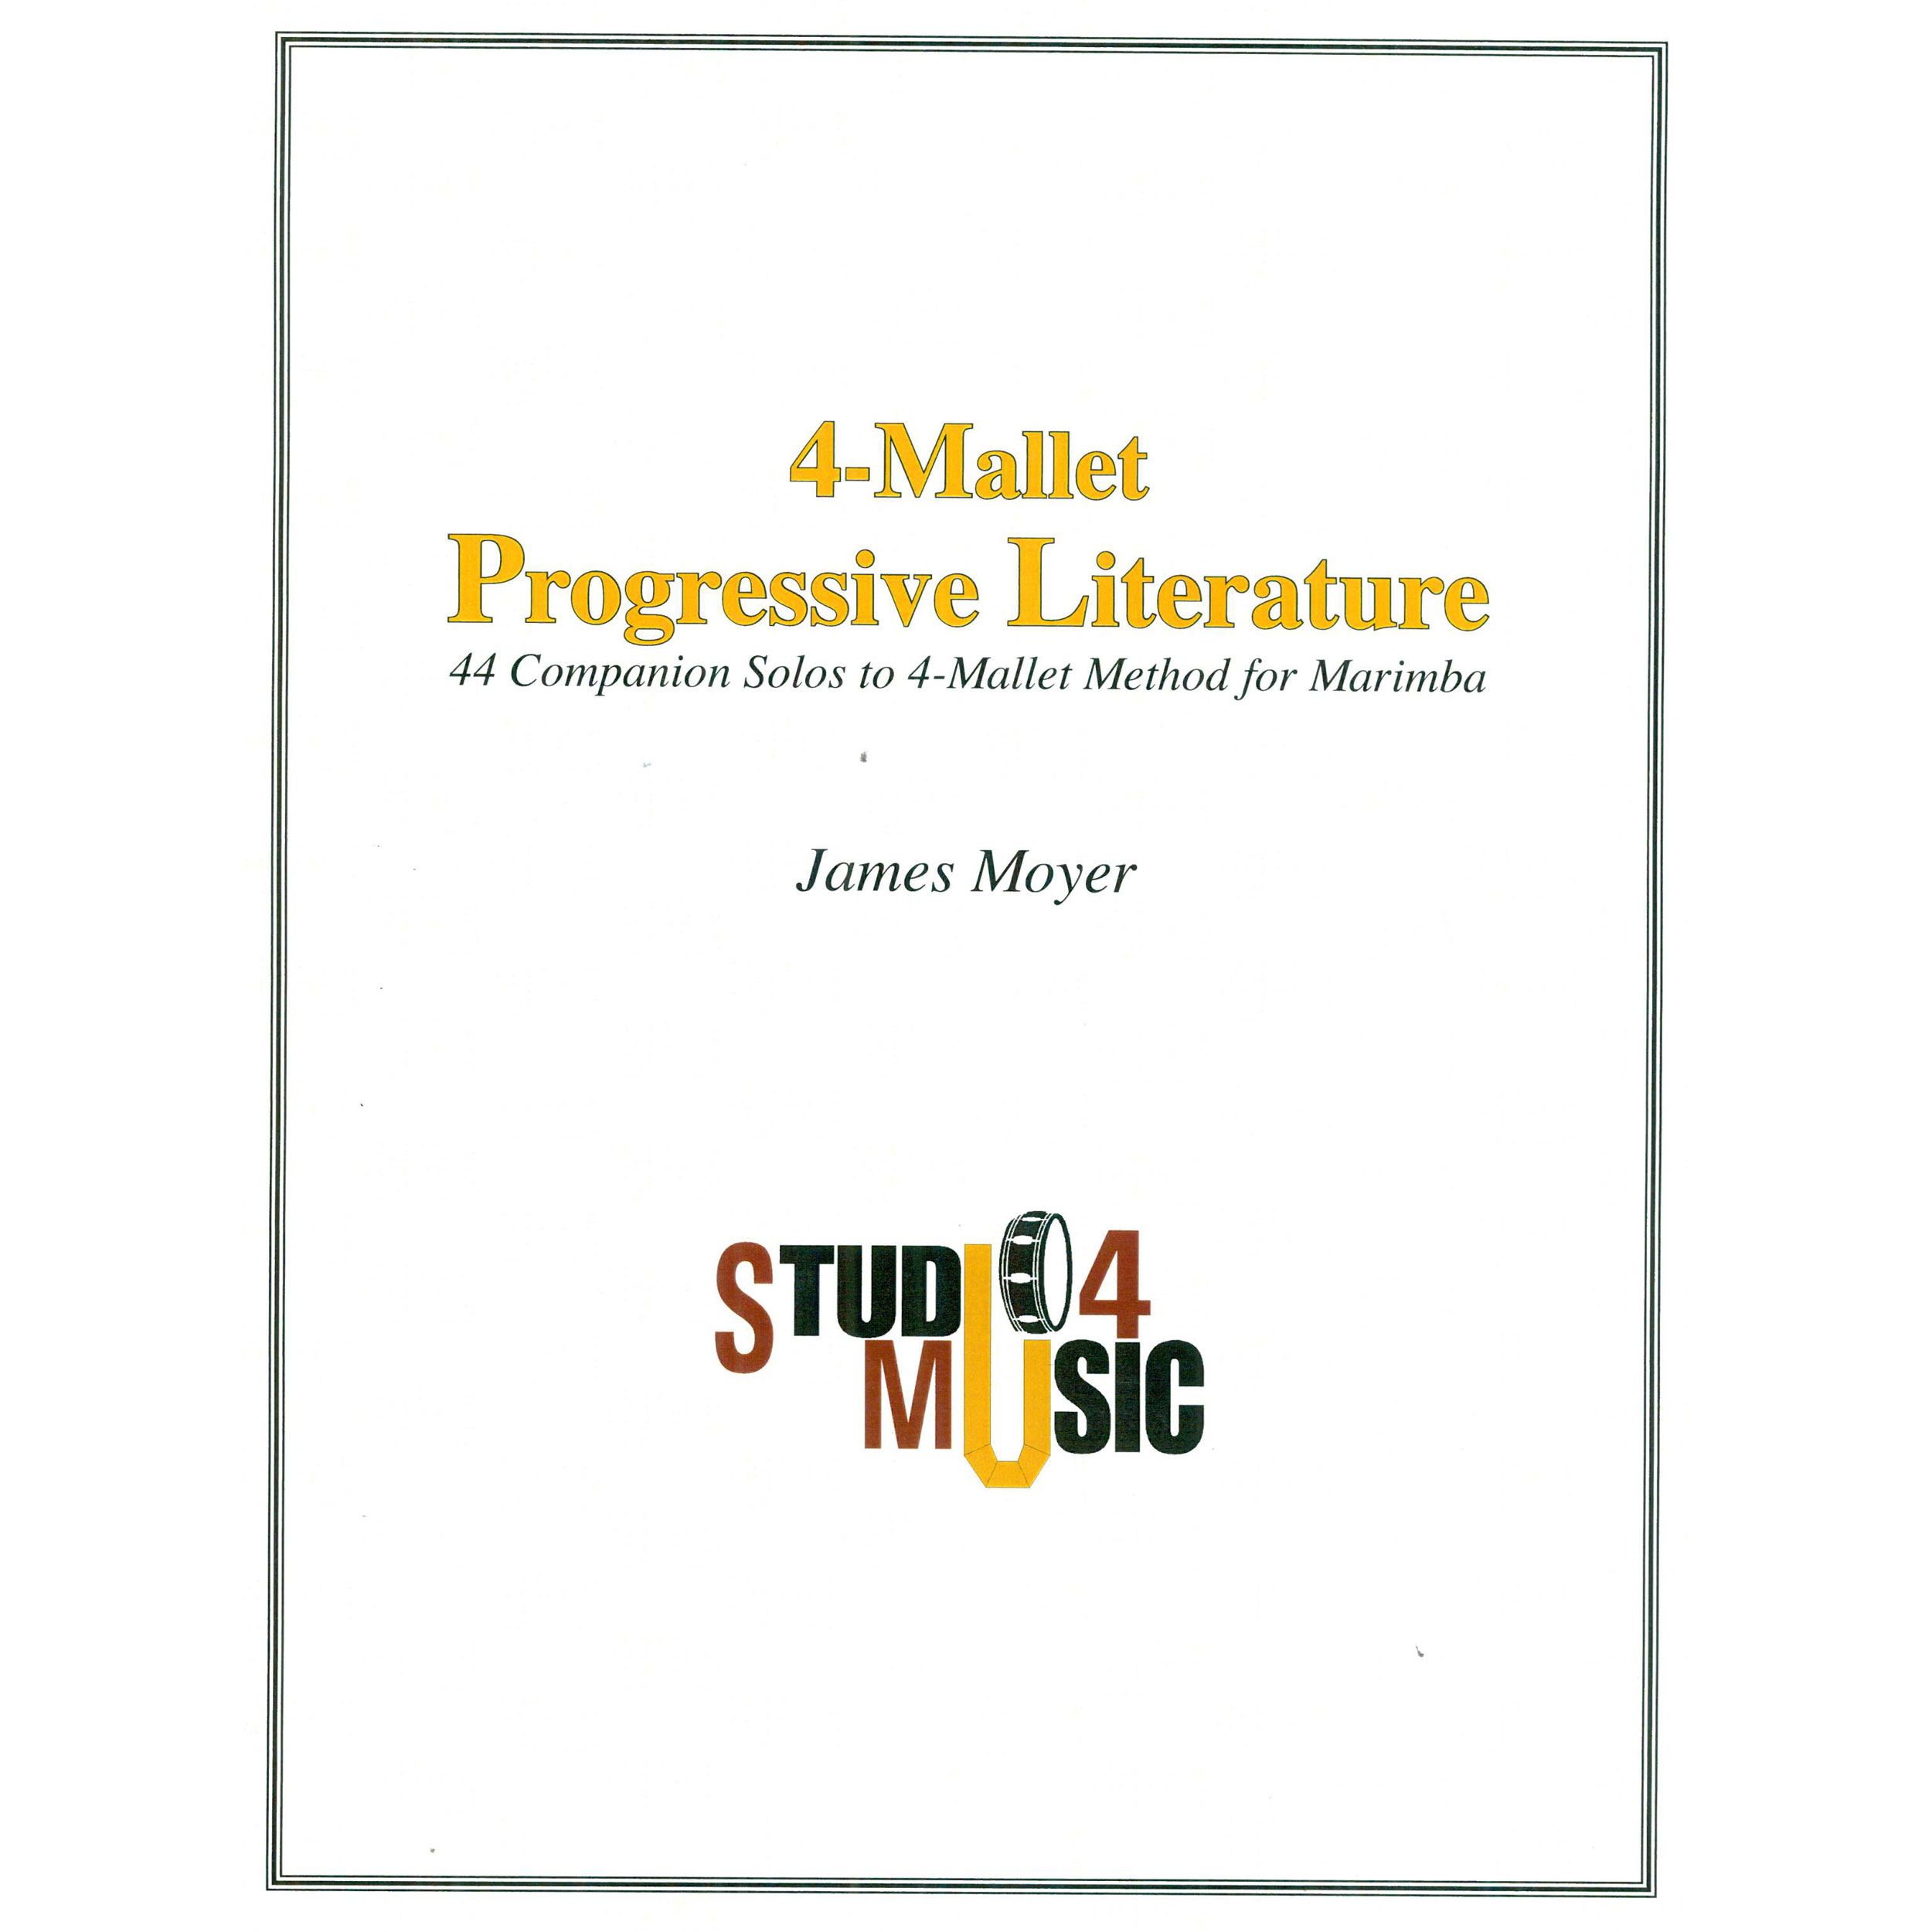 4-Mallet Progressive Literature by James Moyer